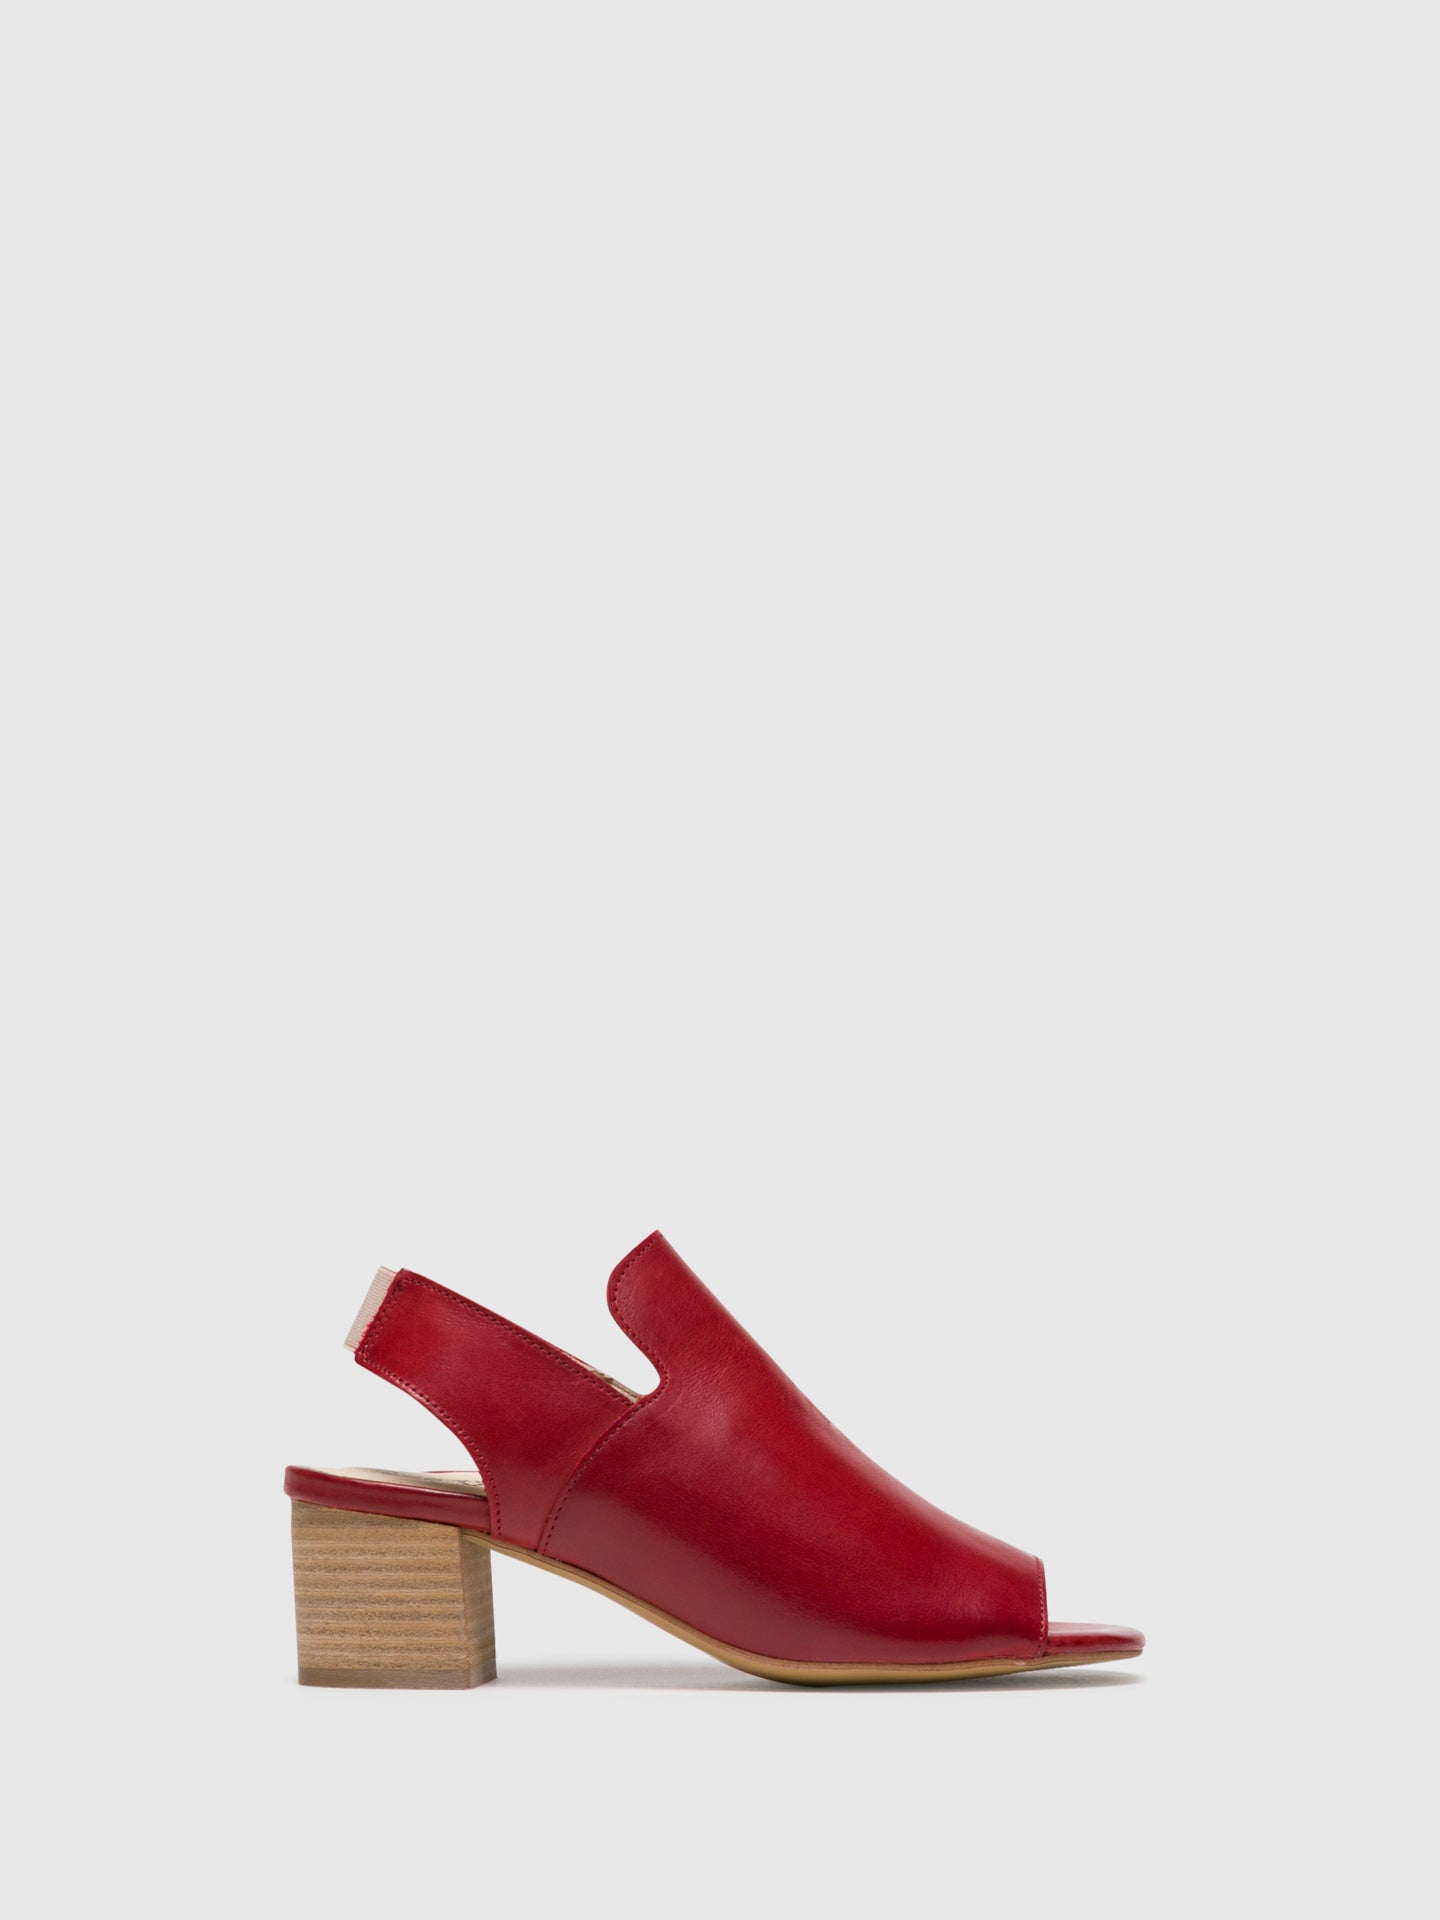 Bos&Co Red Heel Sandals